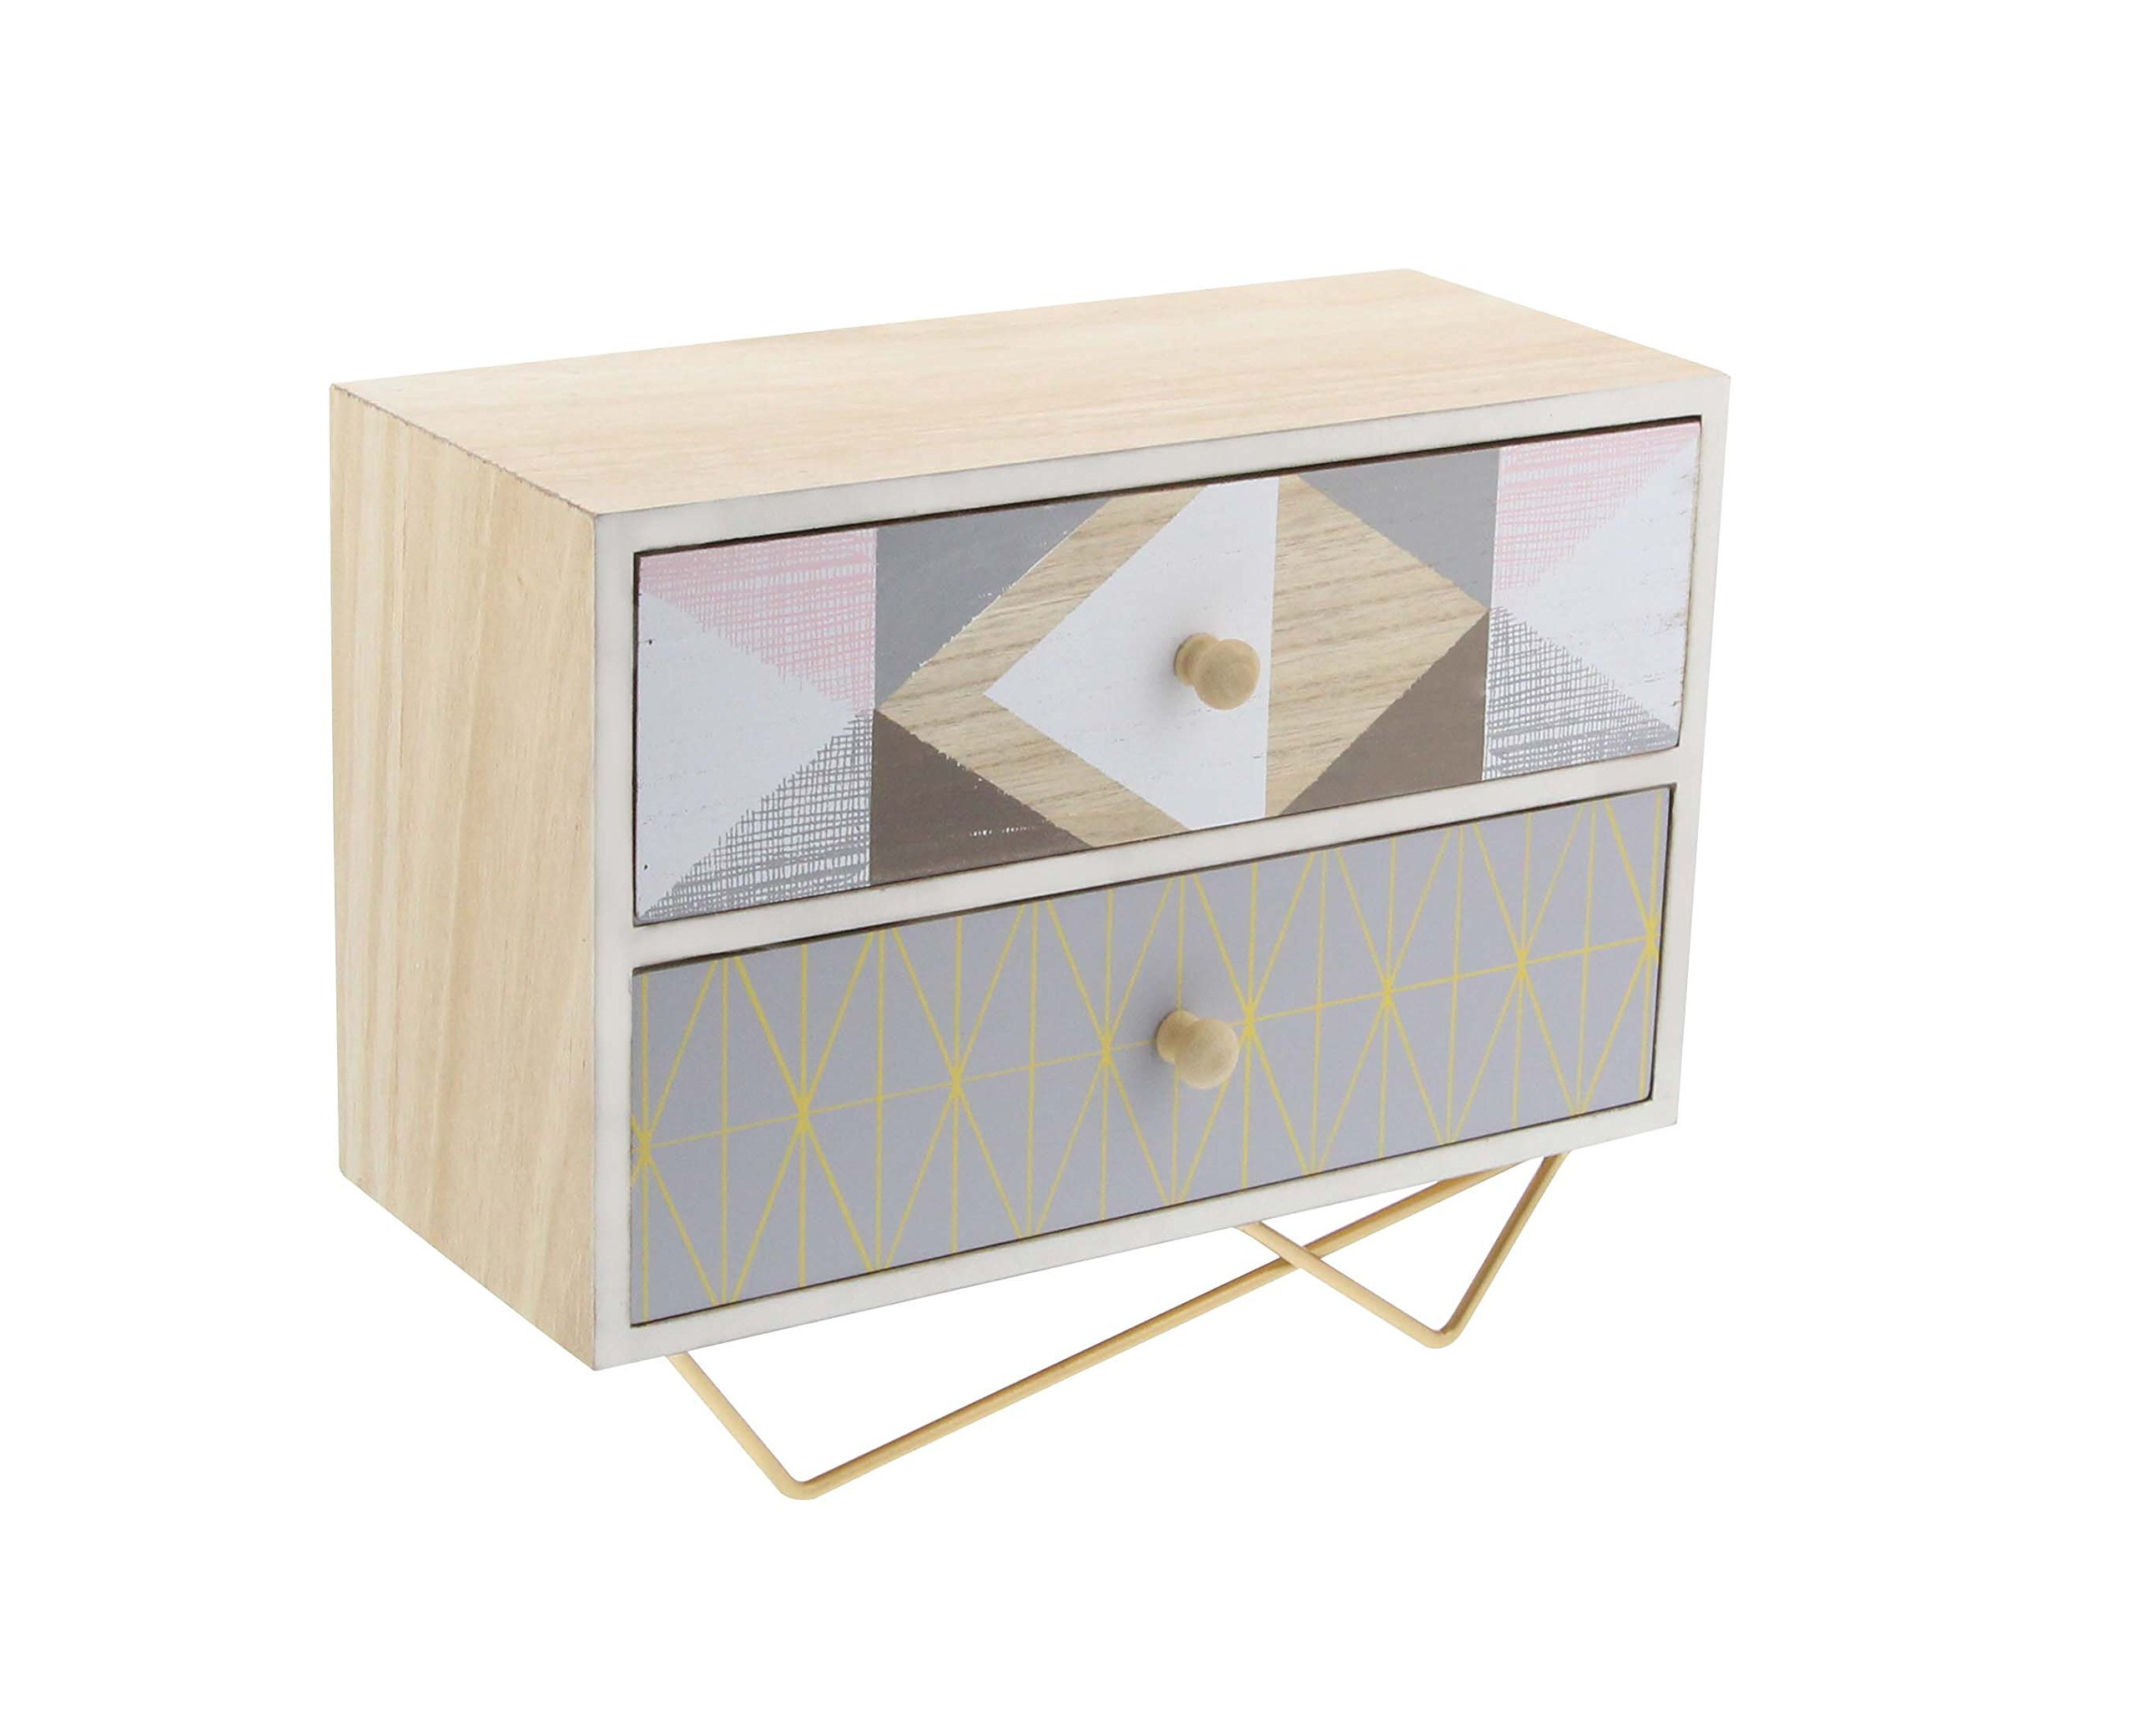 Deco 79 85268 Two-Drawer Jewelry Chest with Iron Rod Stand, 9'', Lightbrown/Gray/White/Gold/Brown